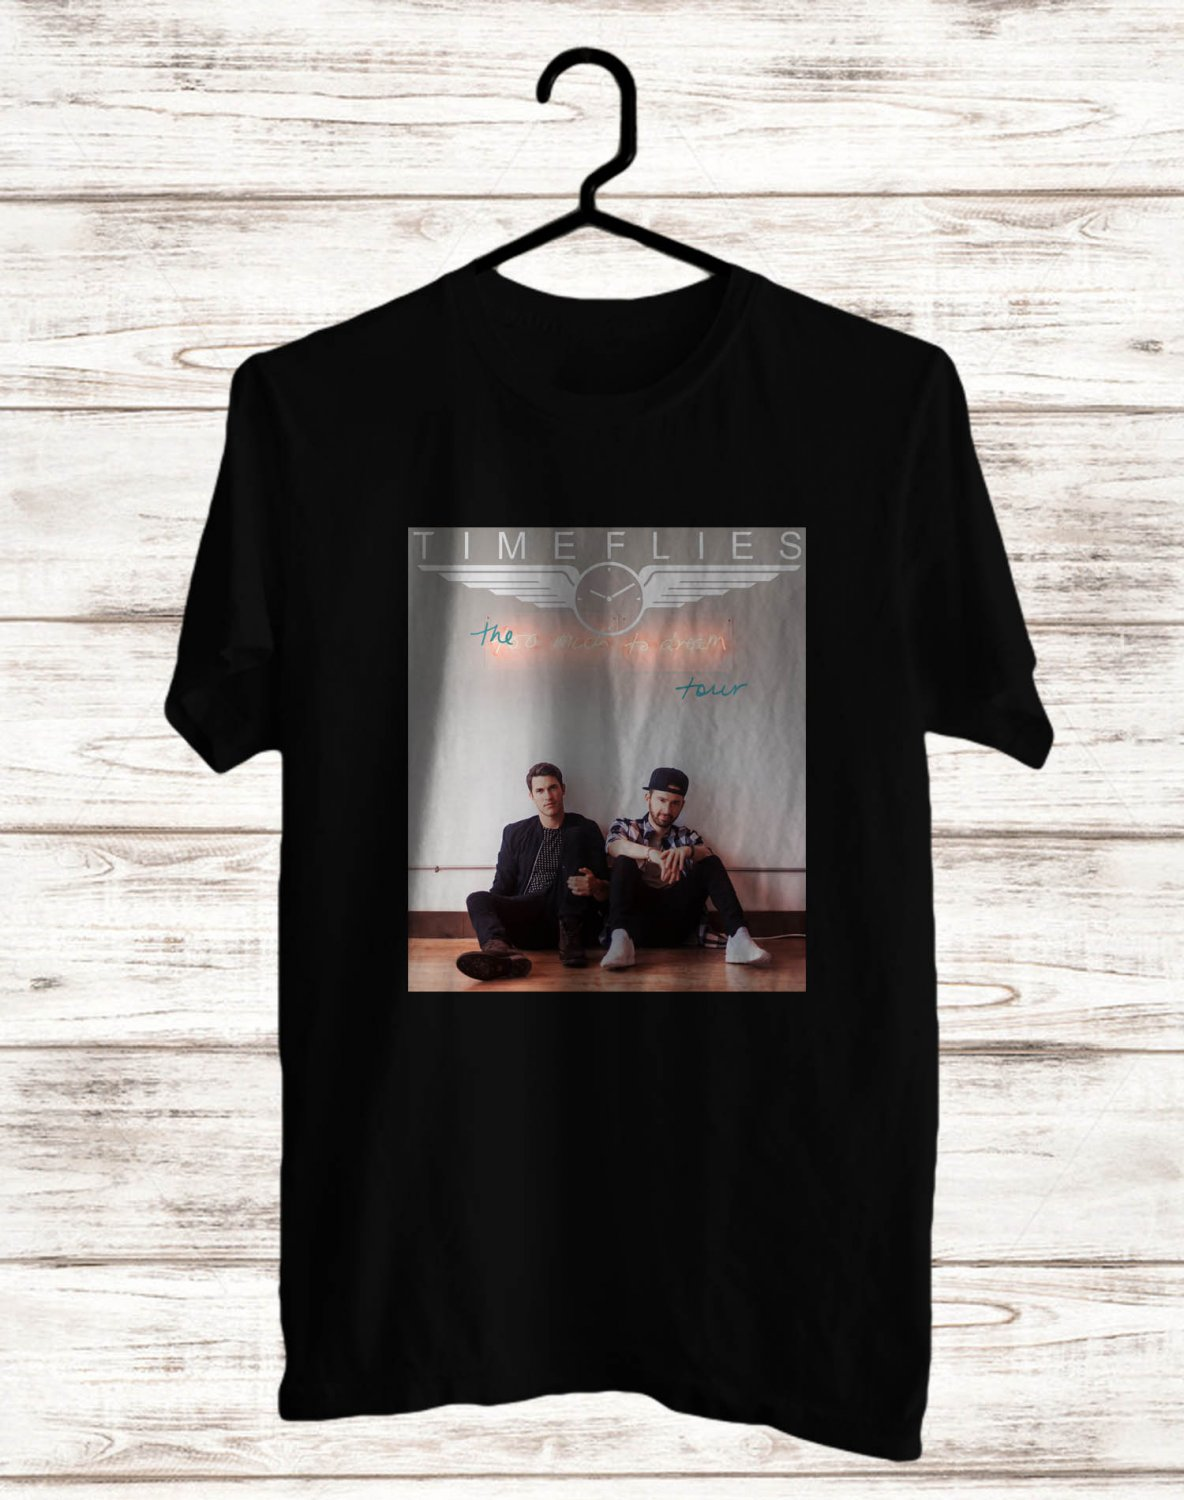 Timeflies Too Much Too Dream Logo Tour 2017 Black Tee's Front Side by Complexart z2